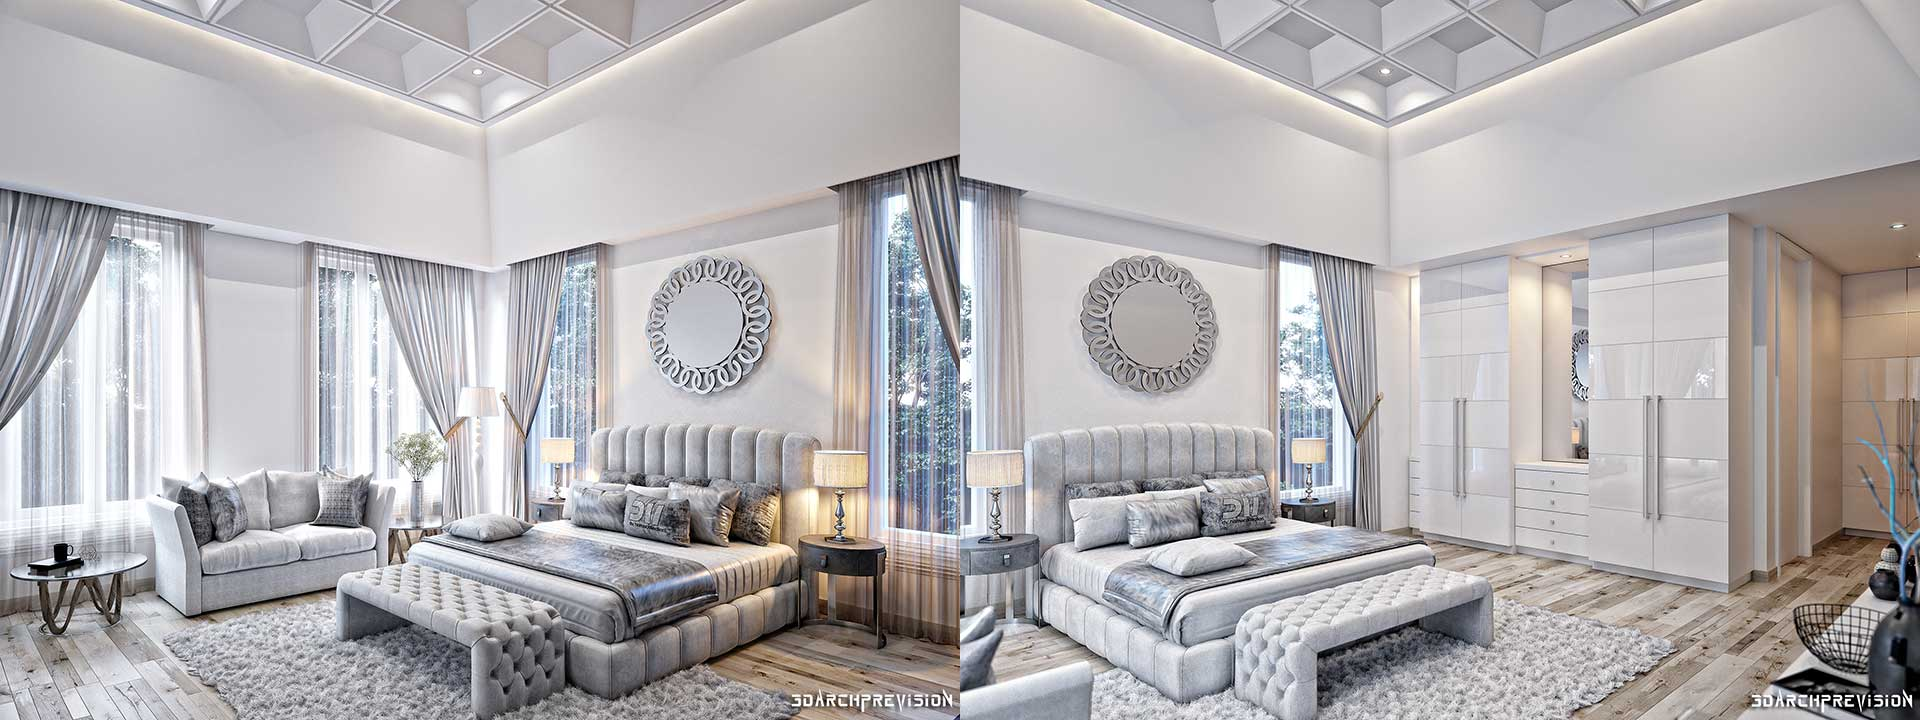 Renders 3d For Master Bedroom Project: Top-Notch 3D Architectural Rendering